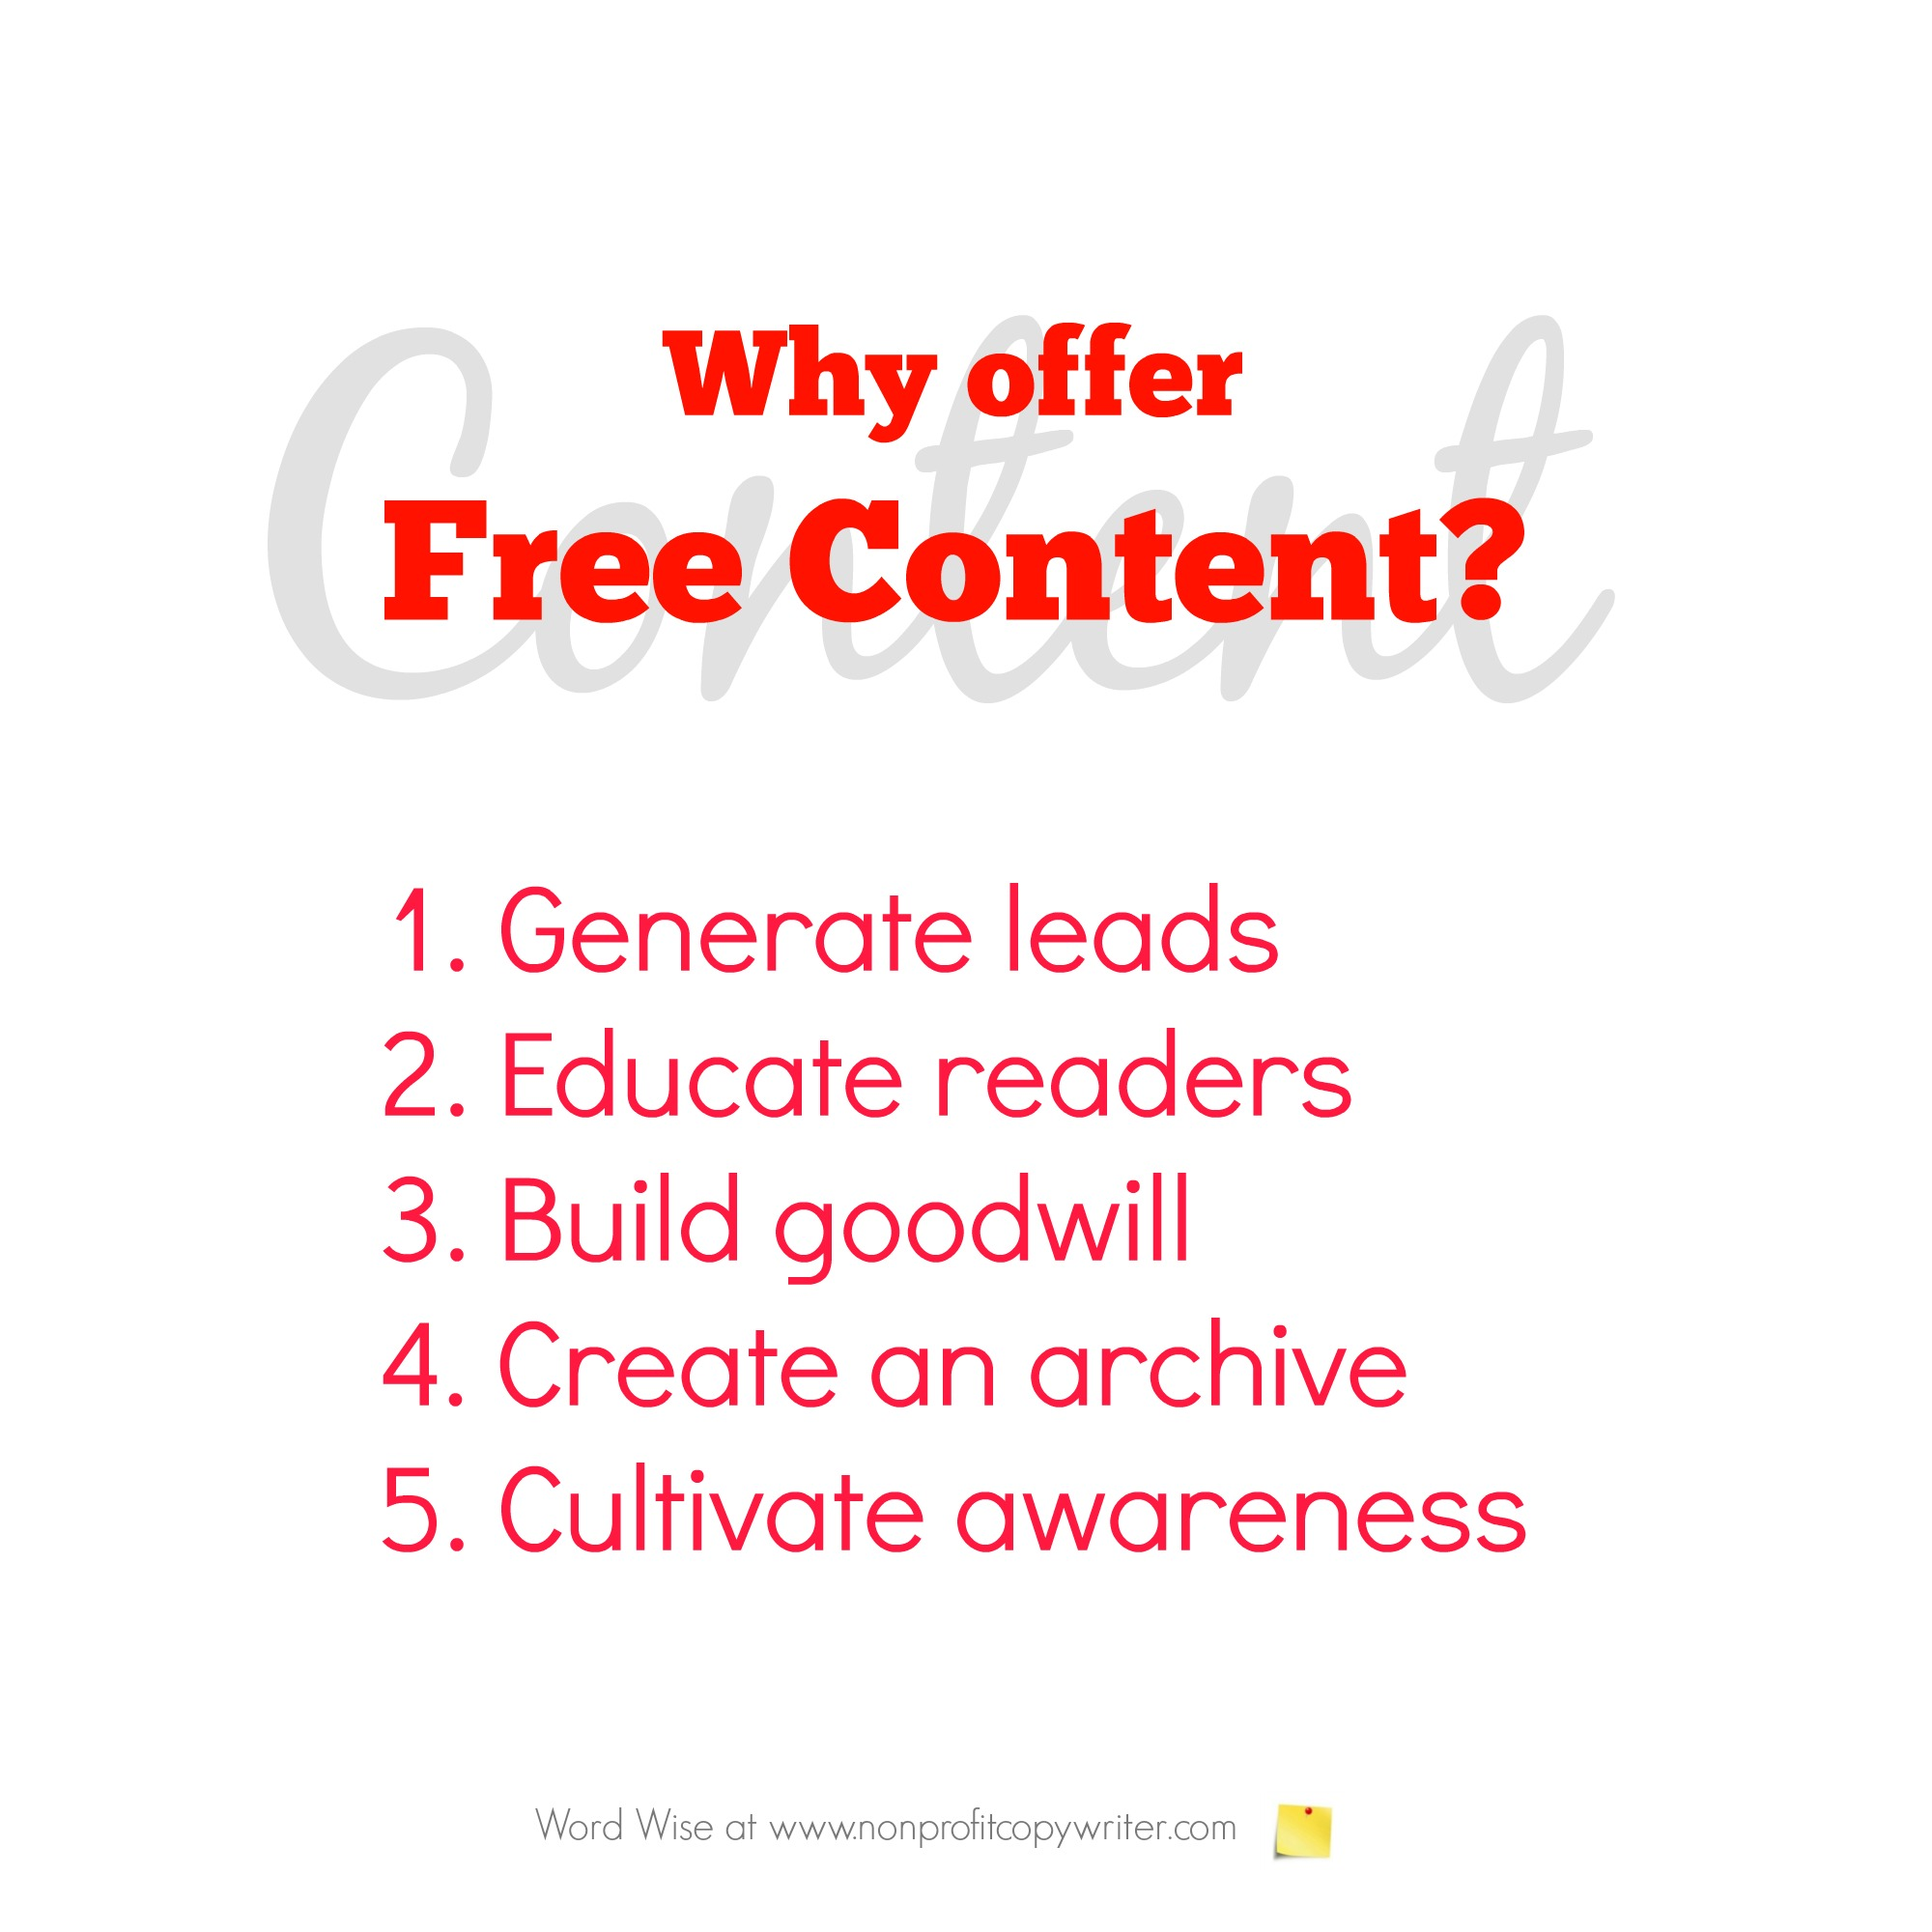 Why offer free content? With Word Wise at Nonprofit Copywriter